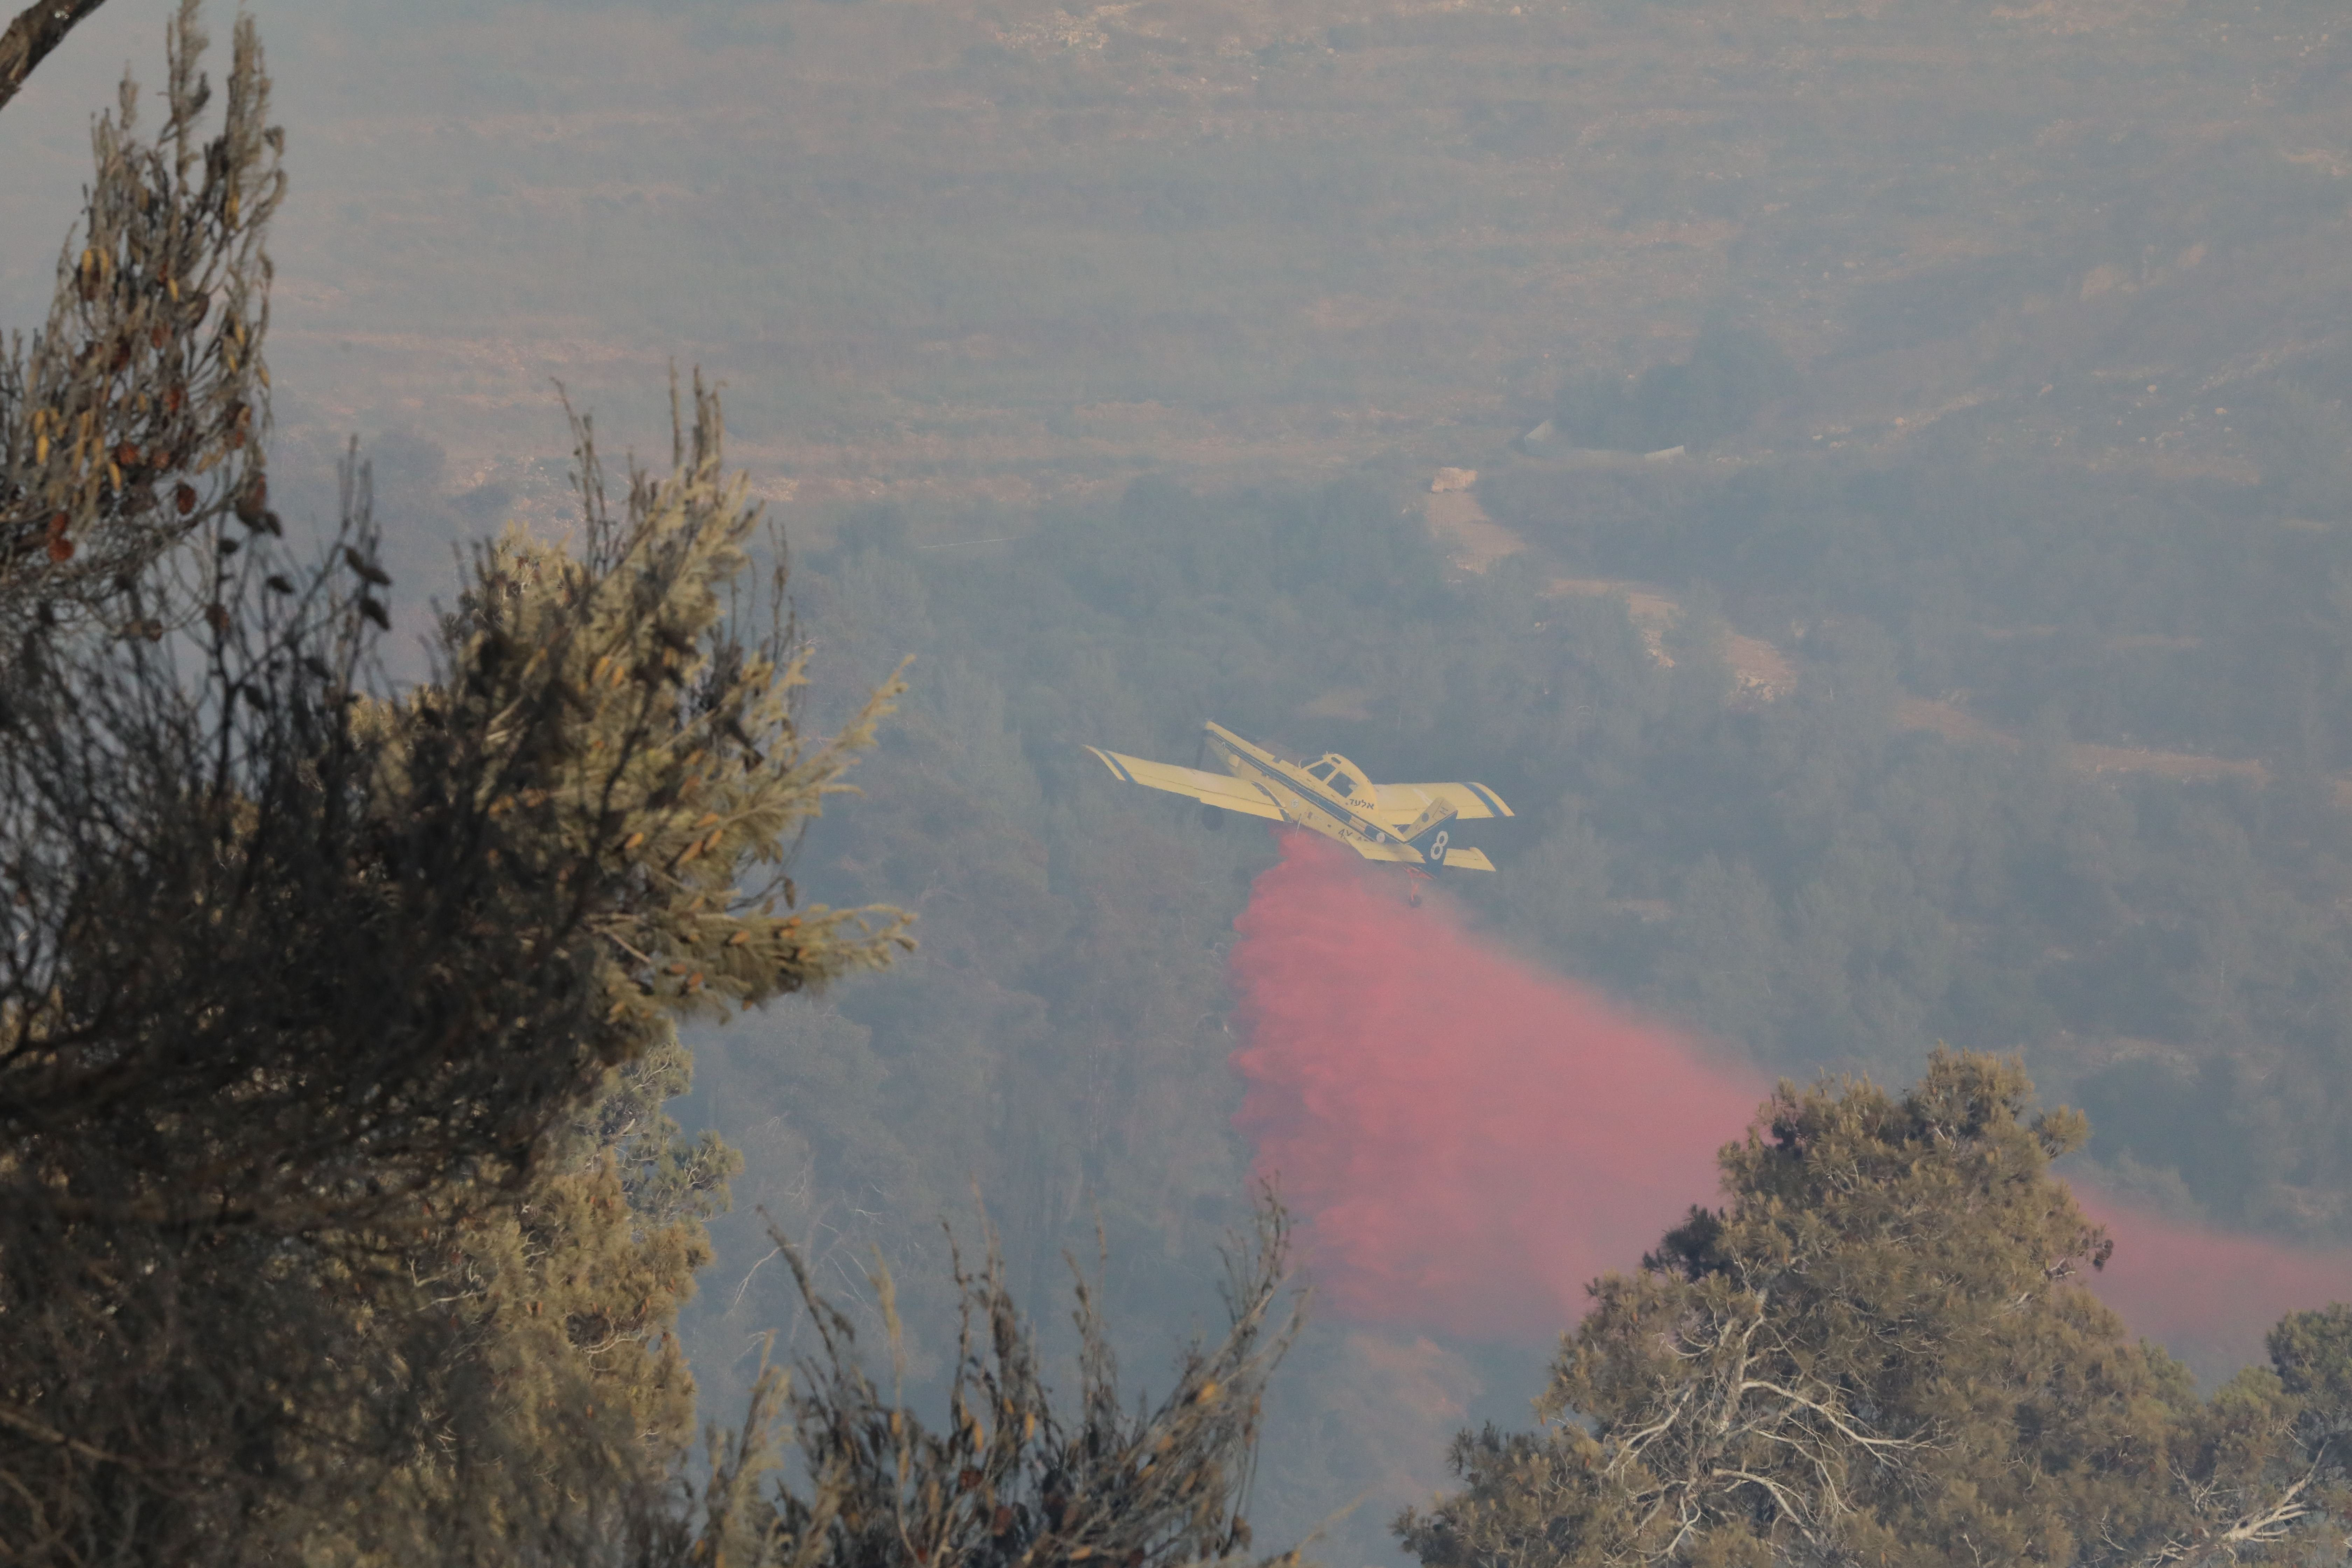 Aircraft waterbombed fires